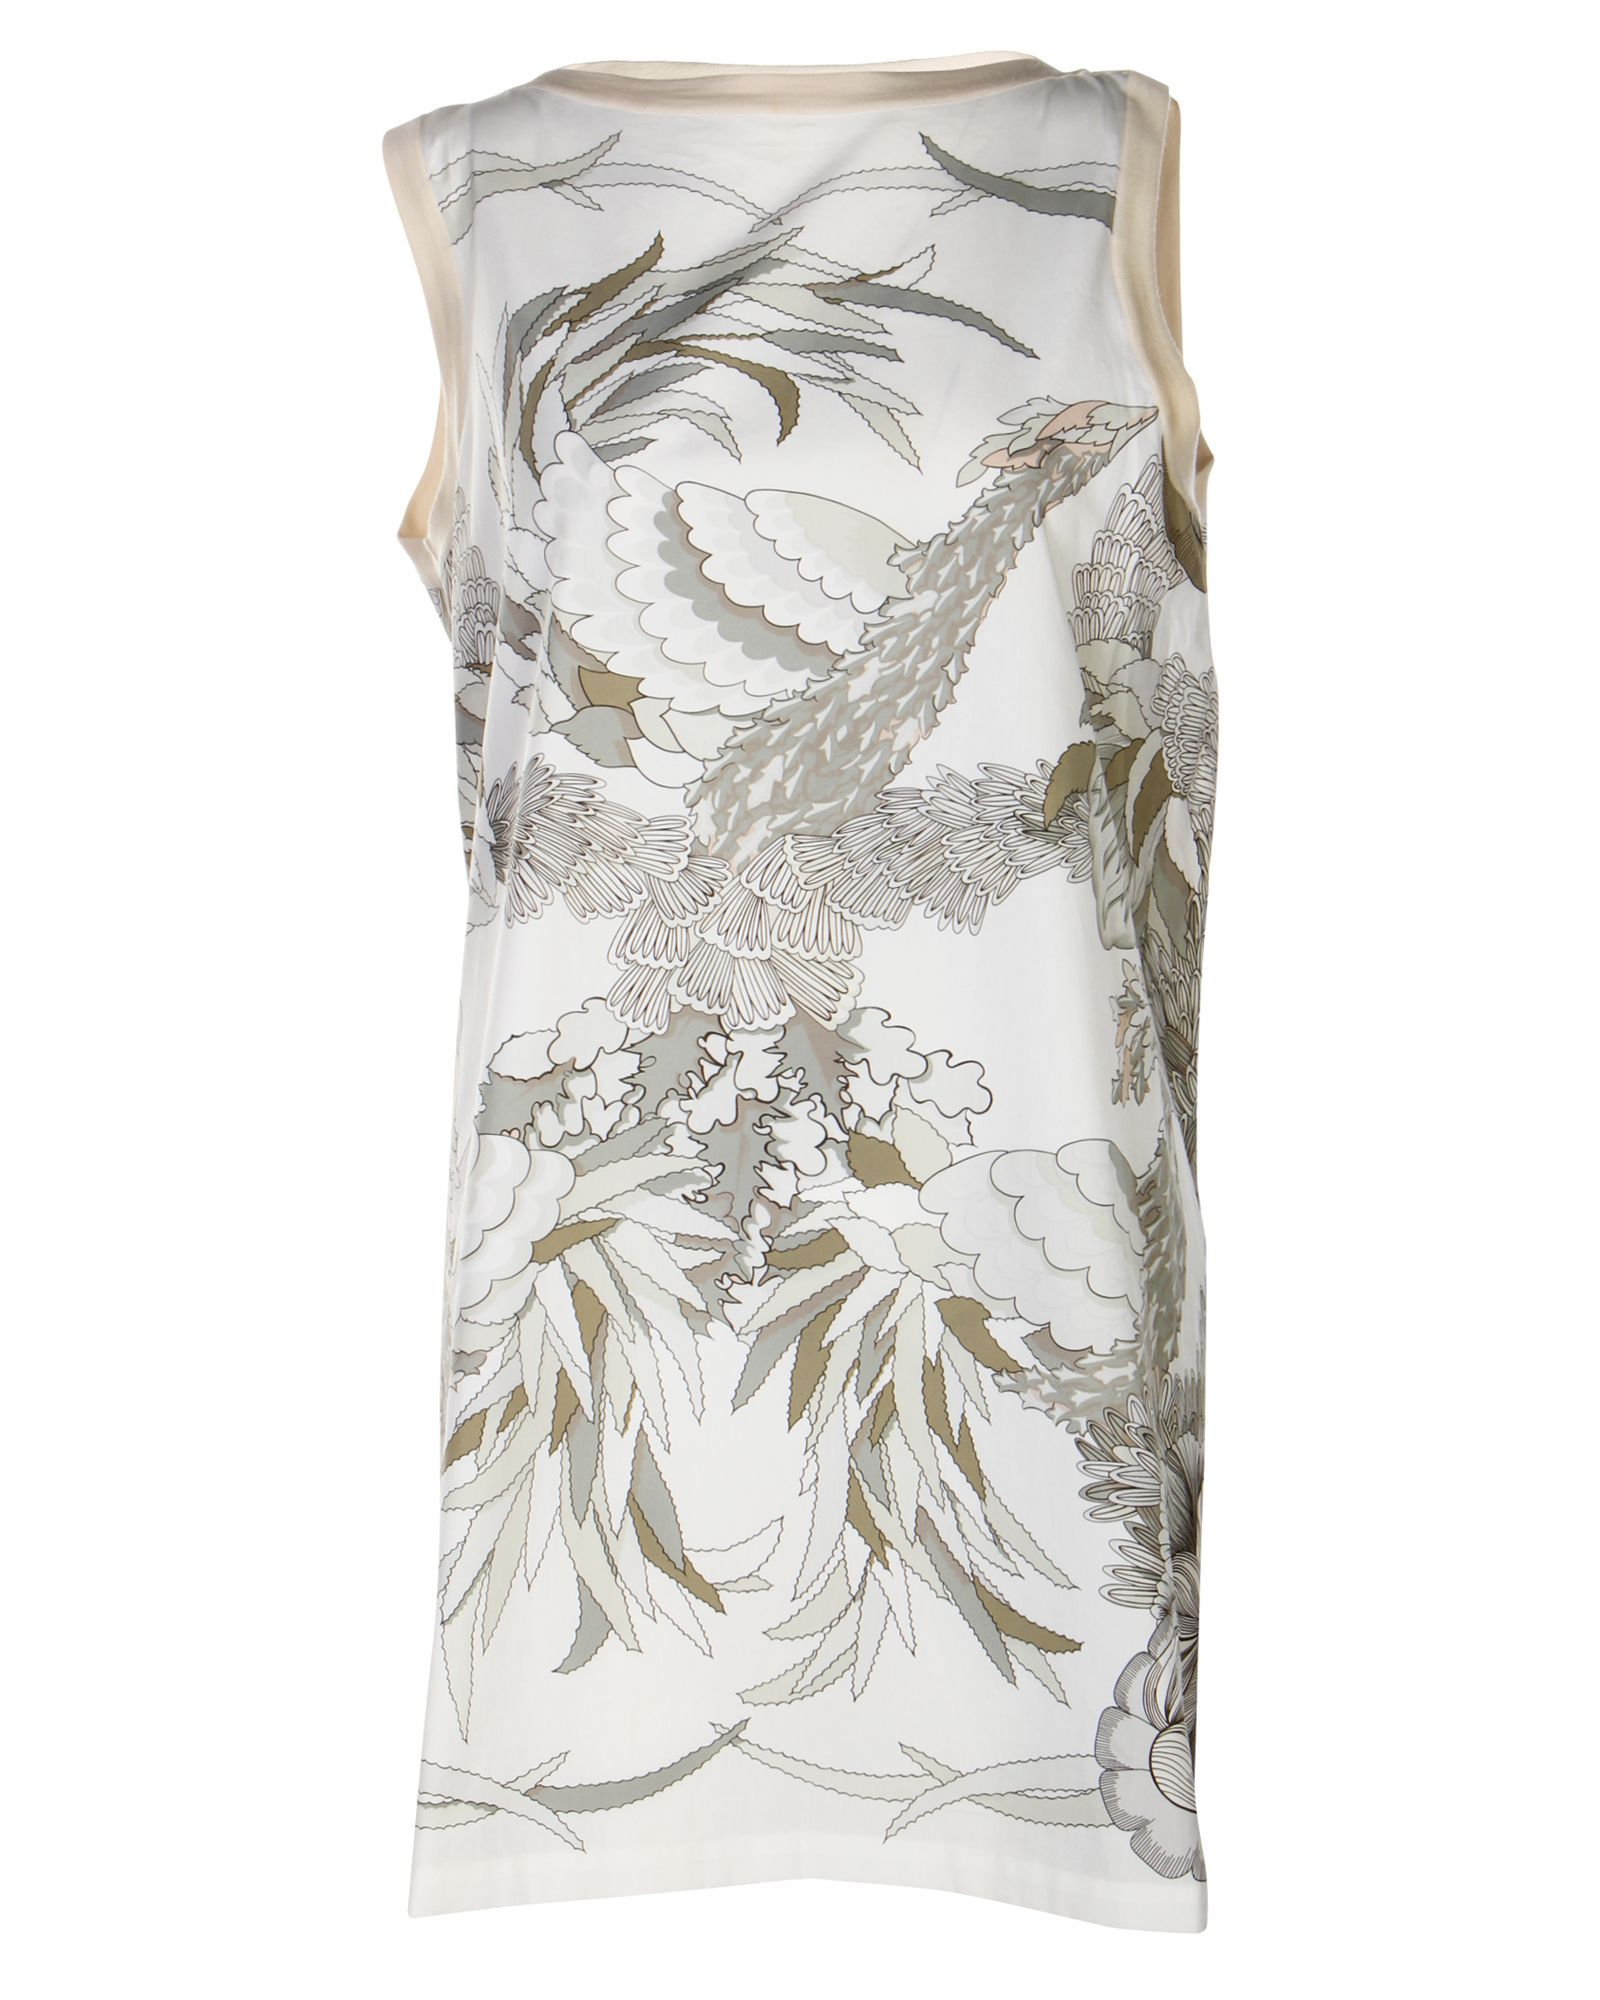 Hermès Printed Beige Dress -Pre Owned Condition Very Good